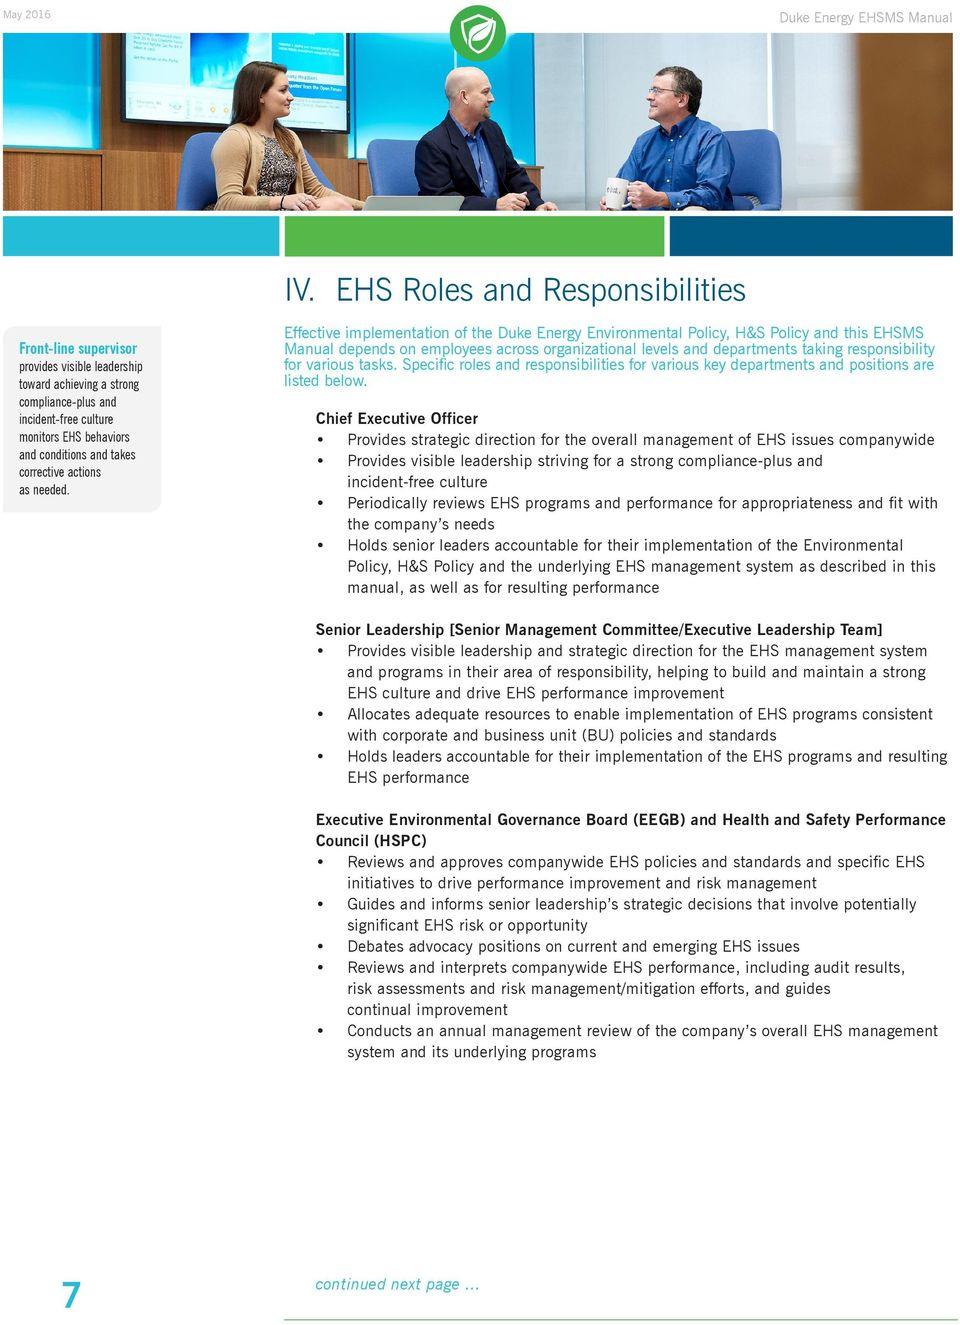 Effective implementation of the Duke Energy Environmental Policy, H&S Policy and this EHSMS Manual depends on employees across organizational levels and departments taking responsibility for various